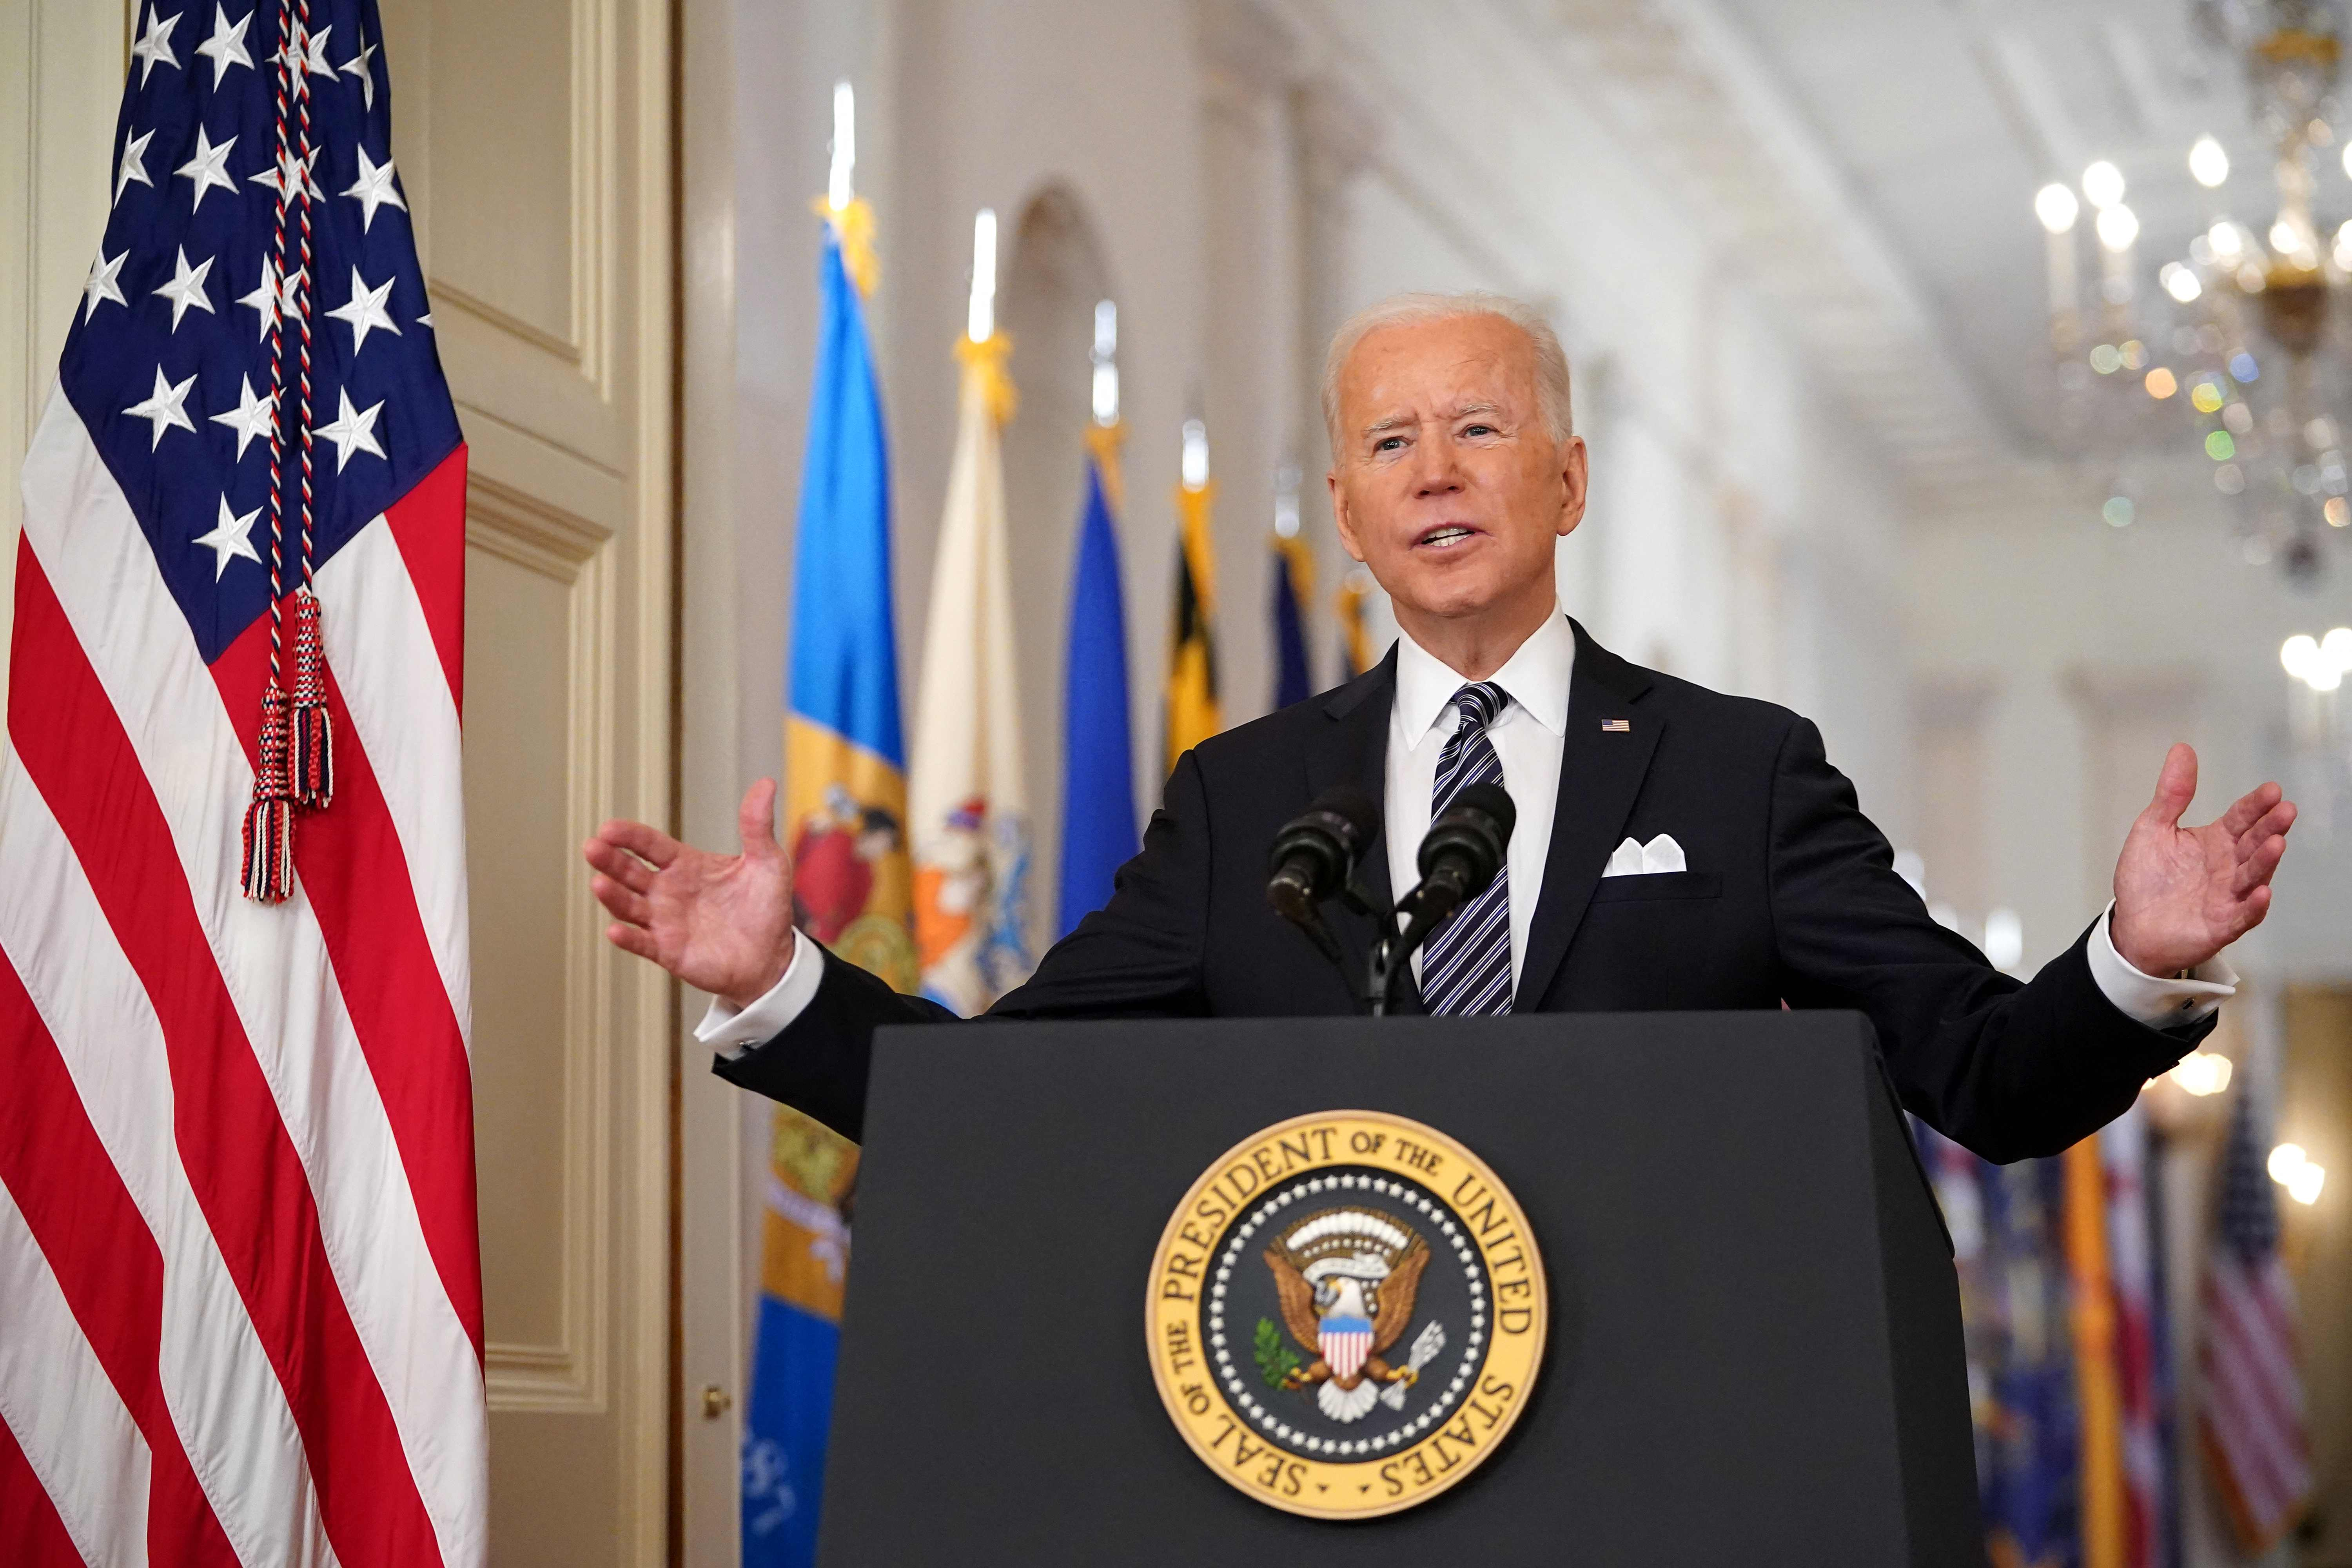 President Biden to hold first press conference next week on 64th day in office